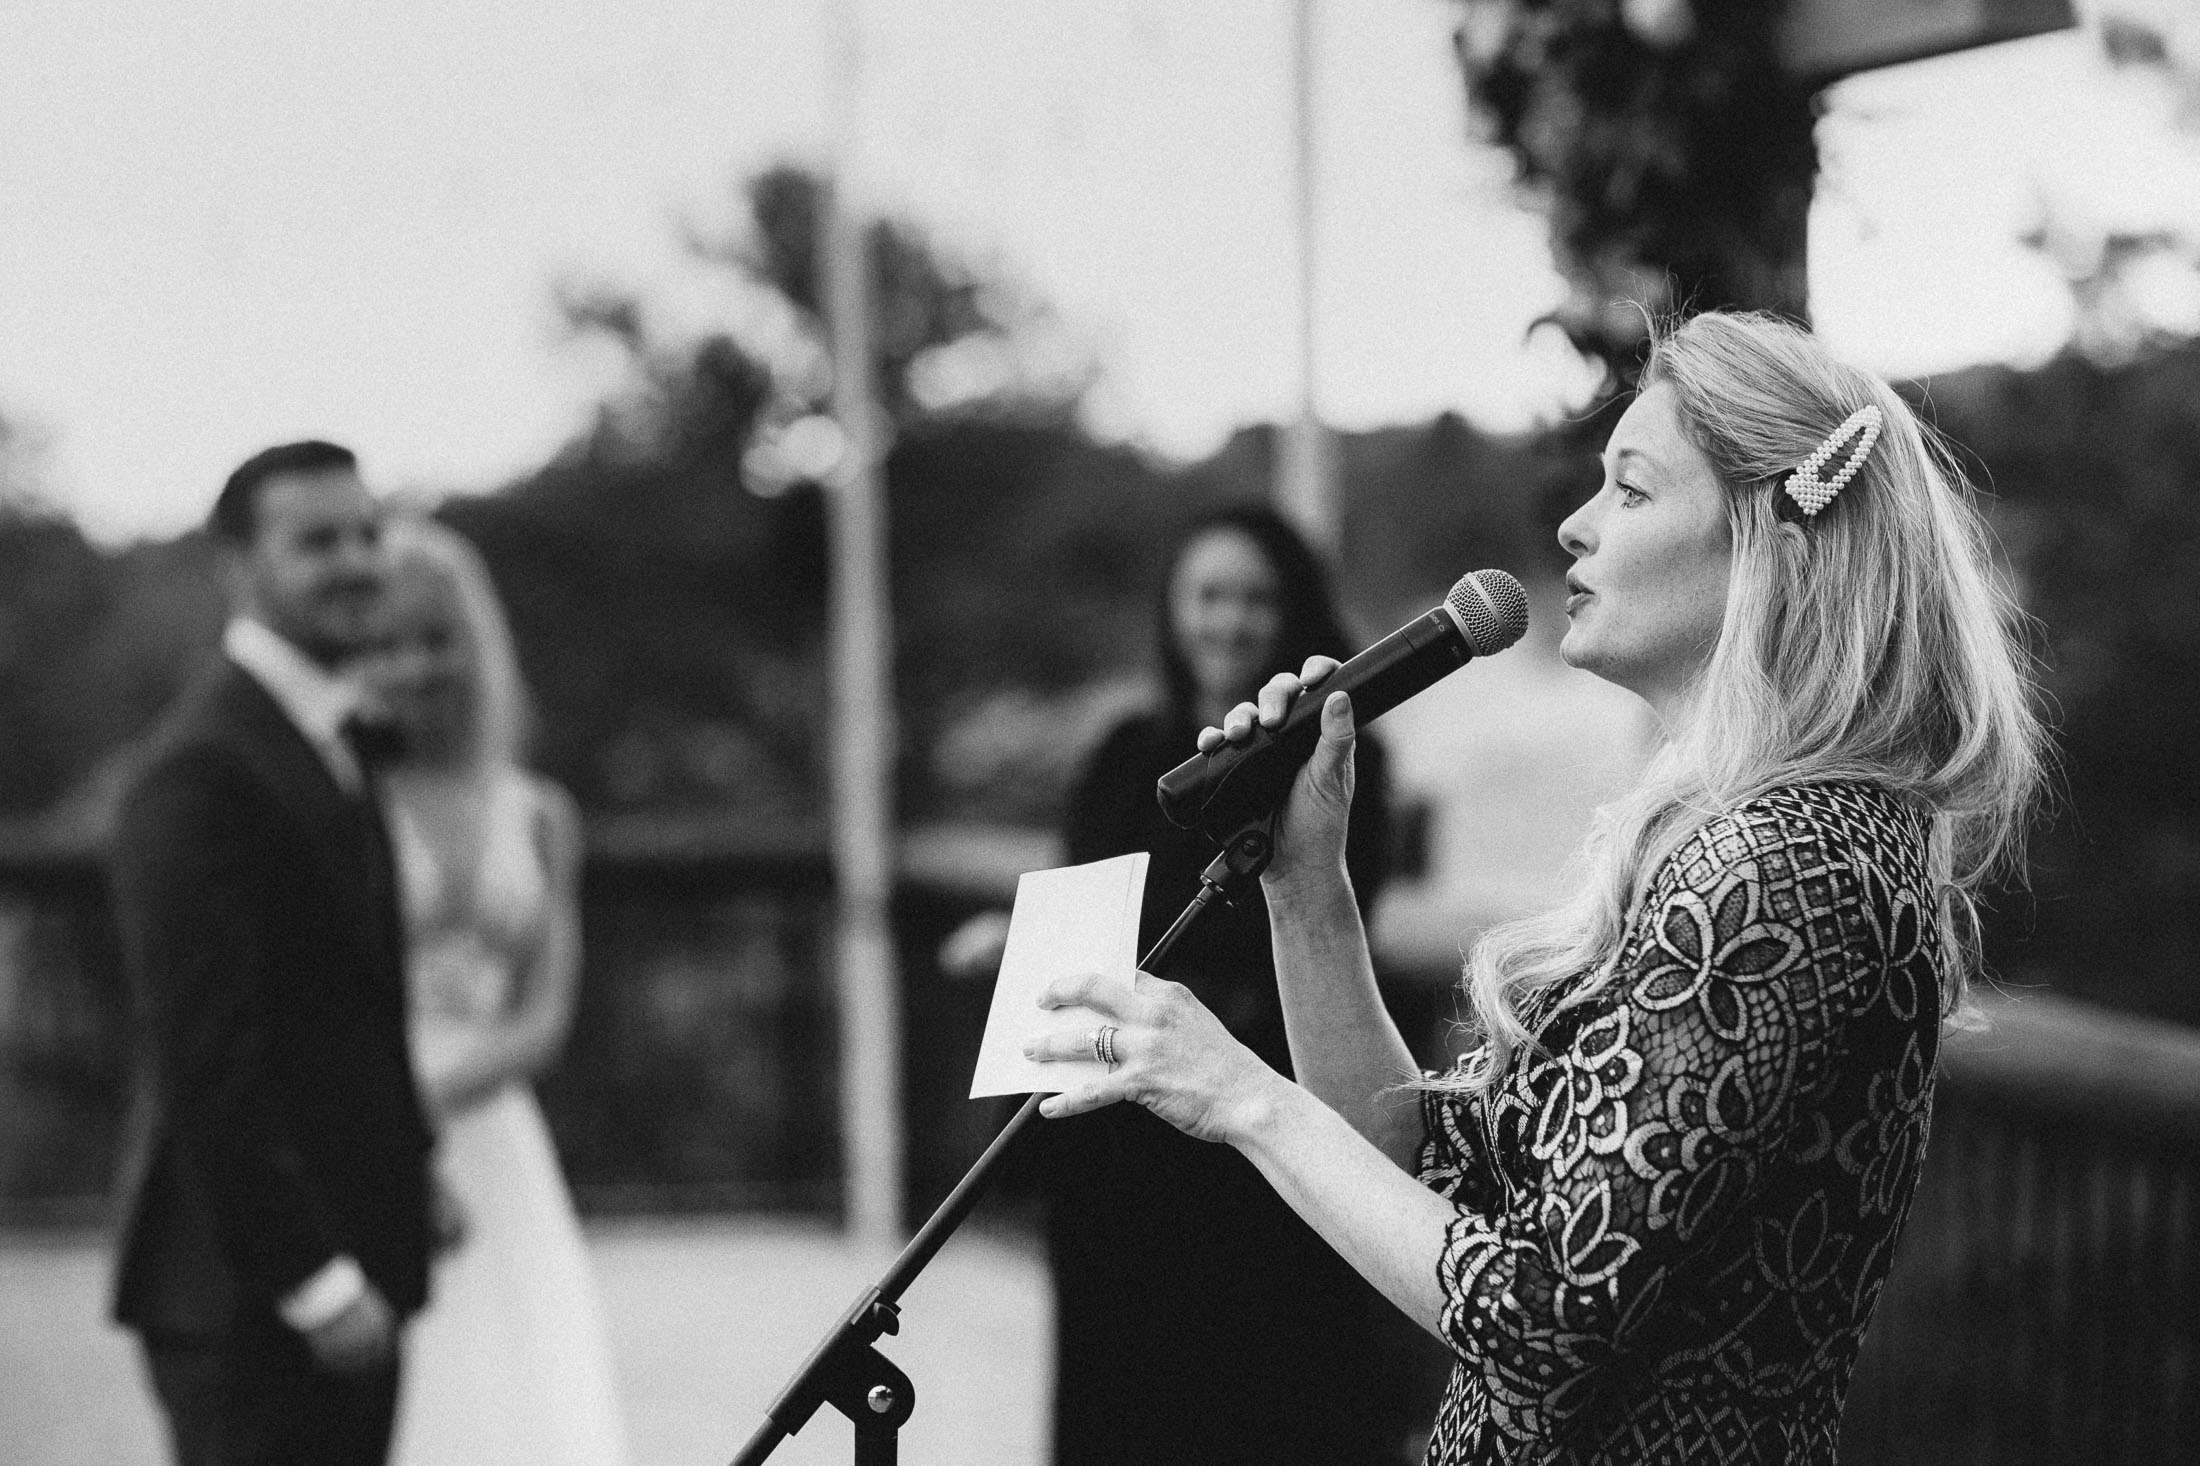 Black and white picture woman singing during wedding ceremony.